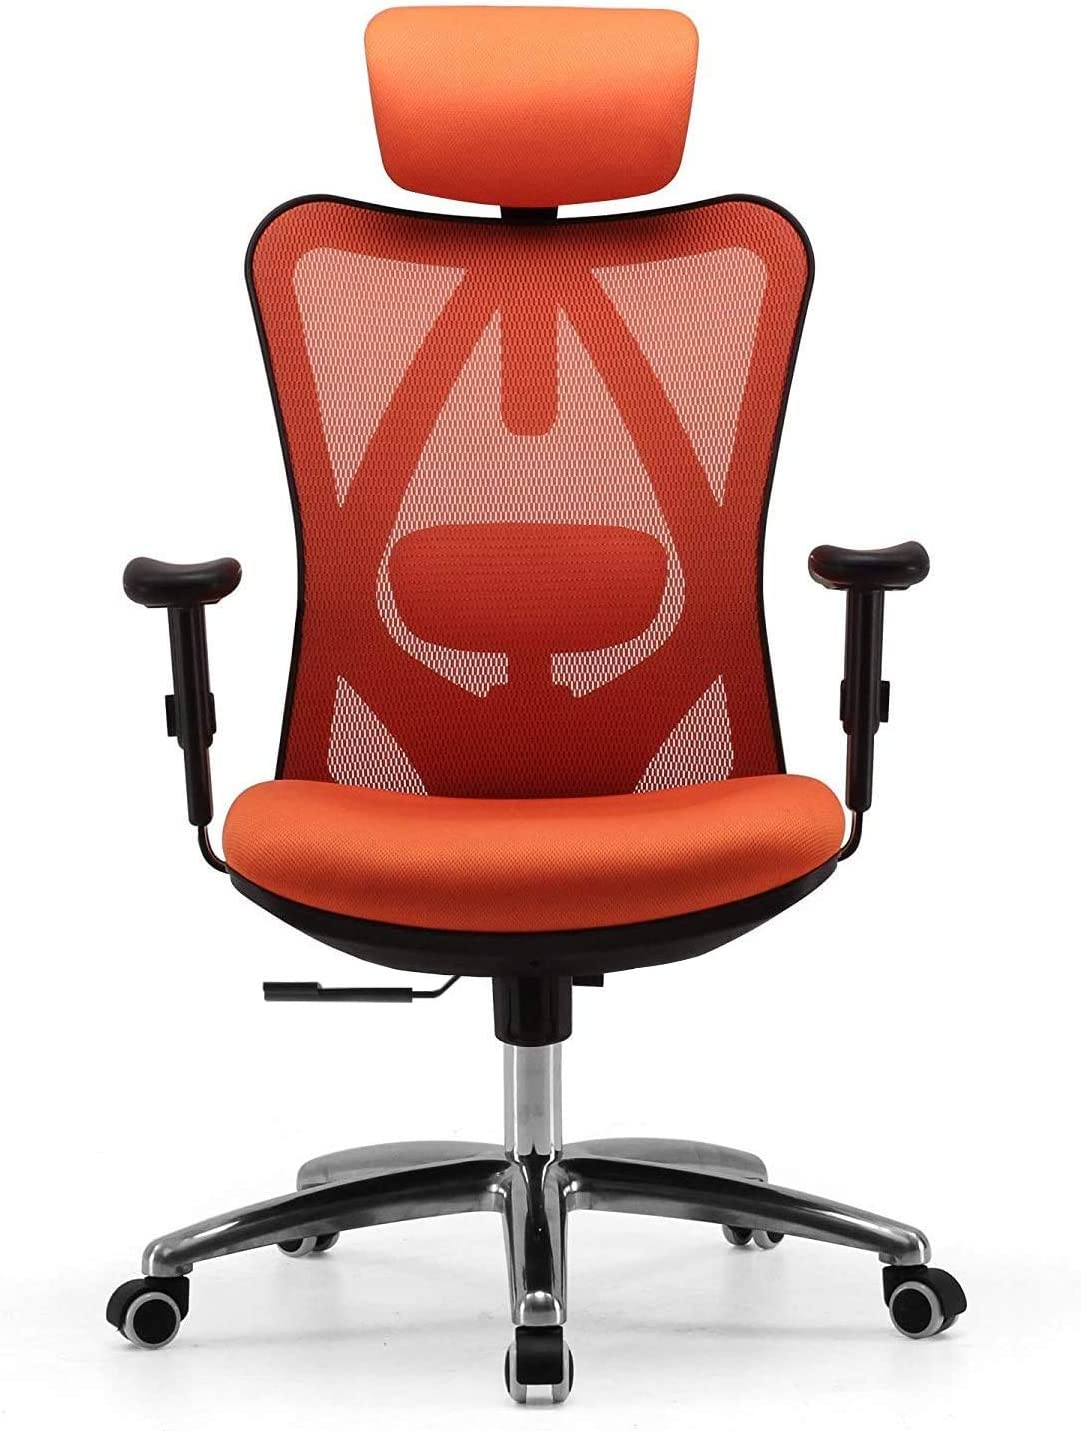 SIHOO Office Chair Ergonomic Office Chair, Breathable Mesh Design High Back Computer Chair, Adjustable Headrest and Lumbar Support (Orange)